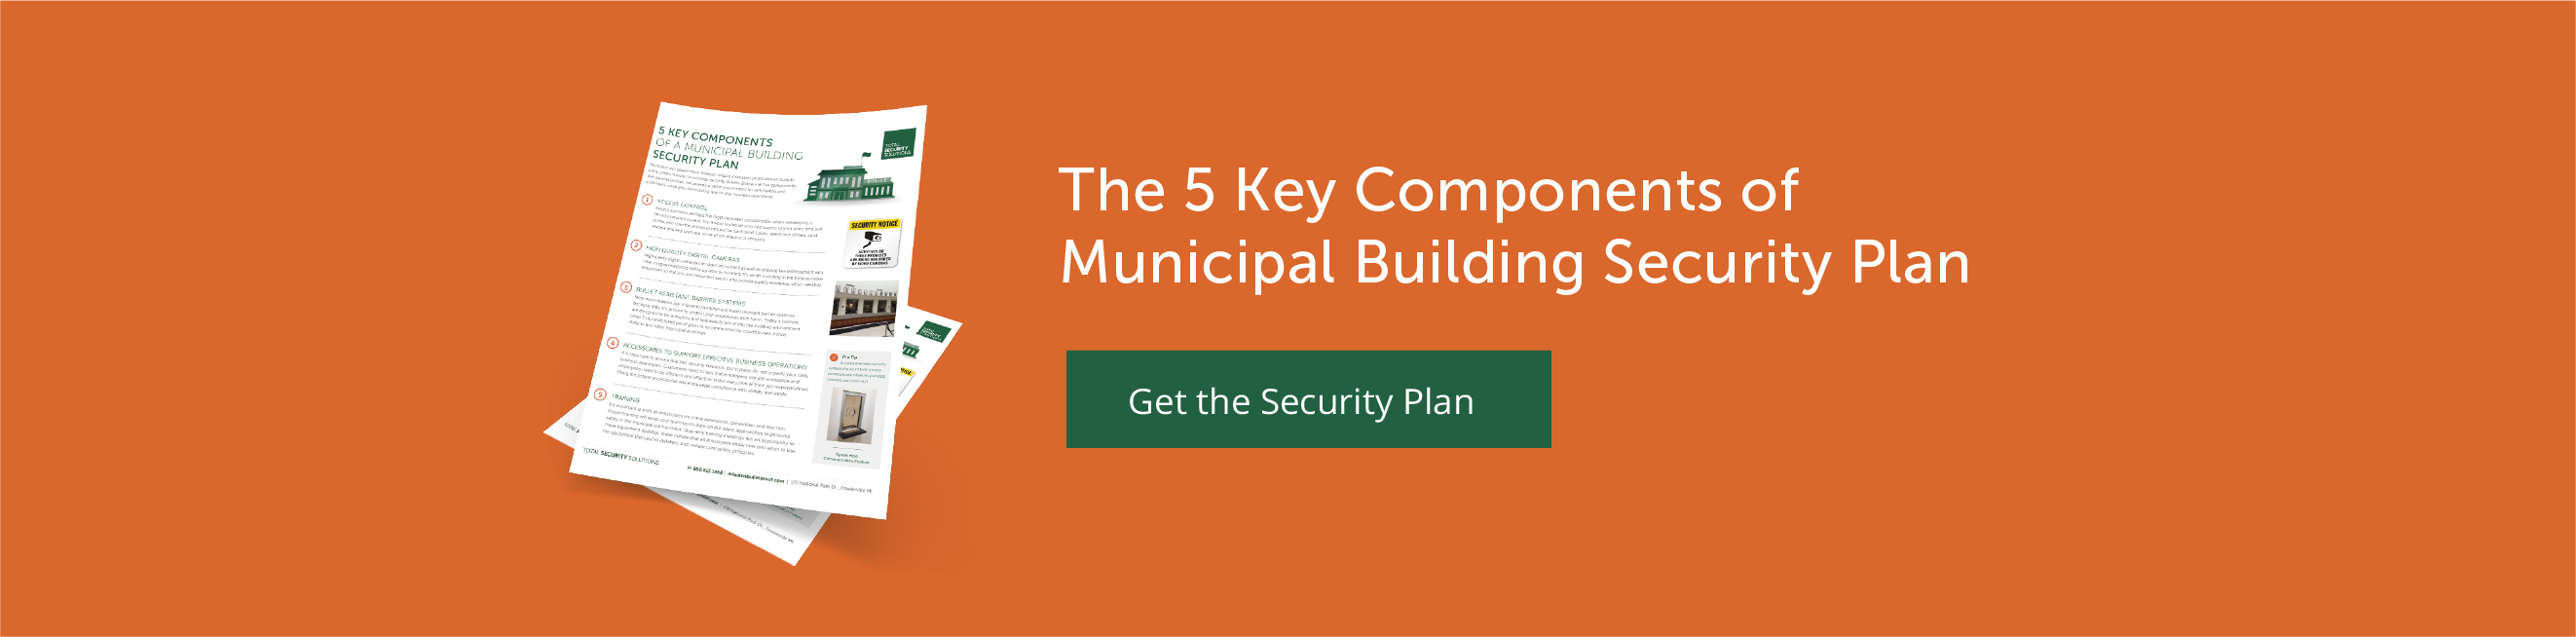 The 5 Key Components of Municipal Building Security Plan